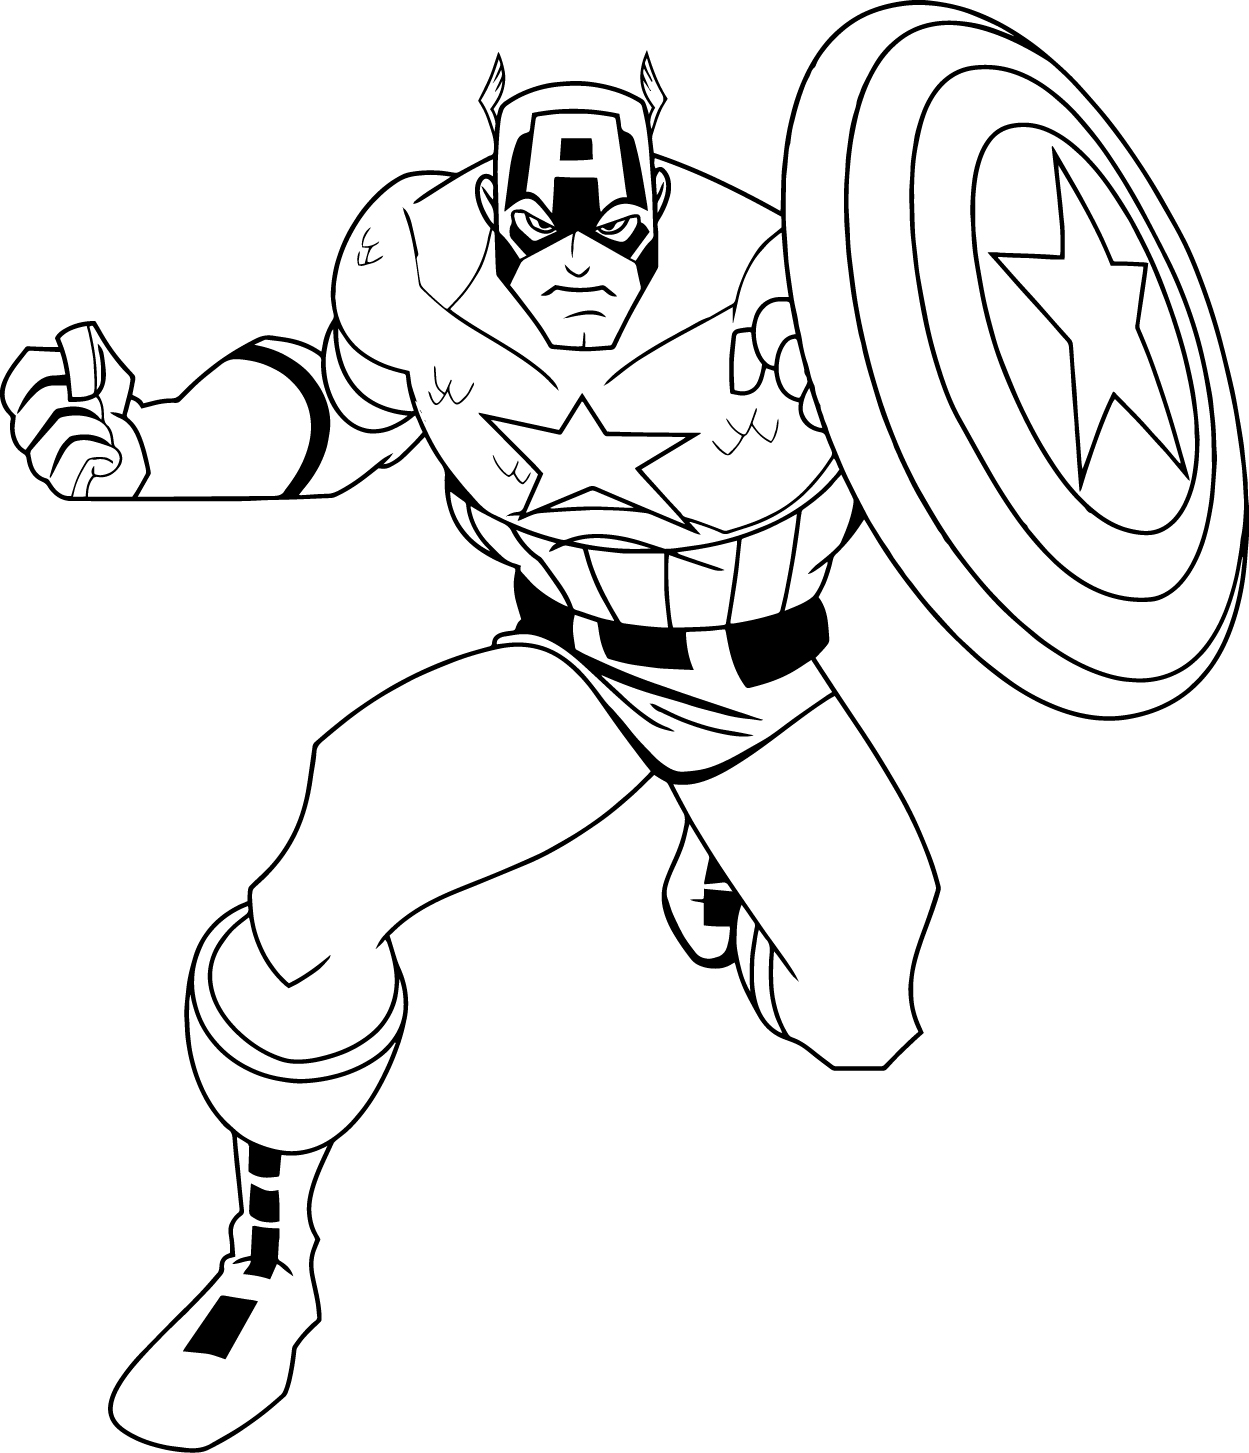 Coloring Pages Captian America Coloring Pages captain america coloring pages wecoloringpage pages